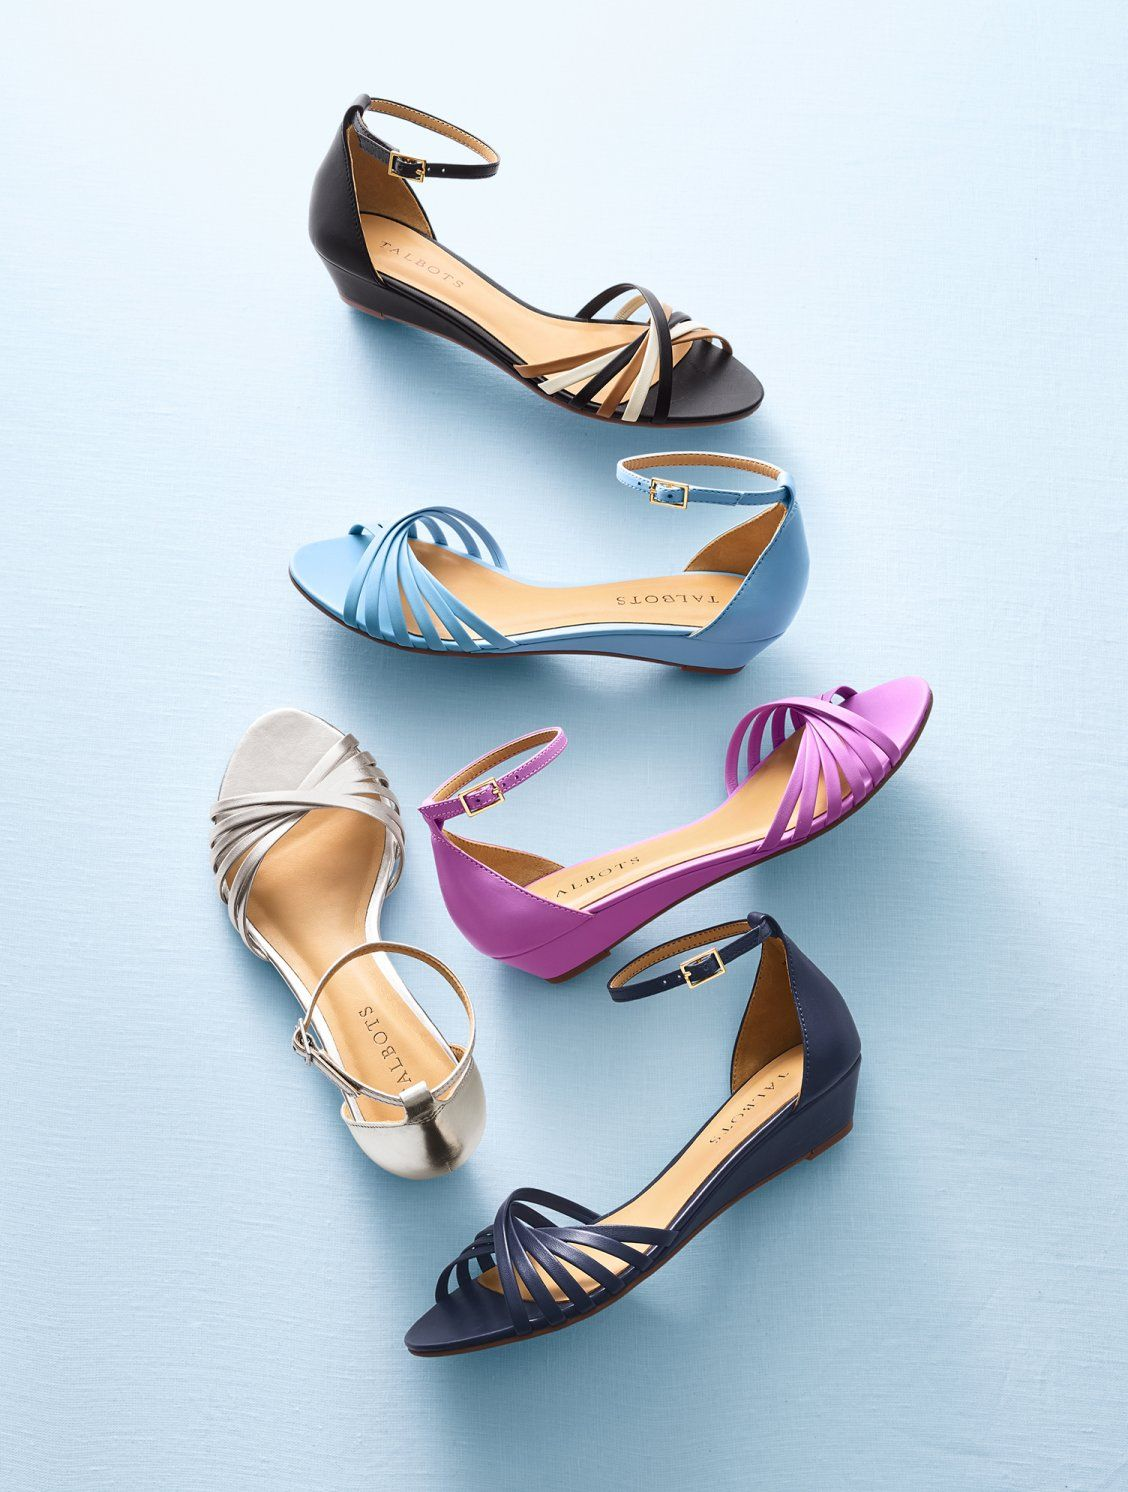 e9442ad22ff Our Capri Wedge Sandal - with a twist! With a comfortable low wedge heel and